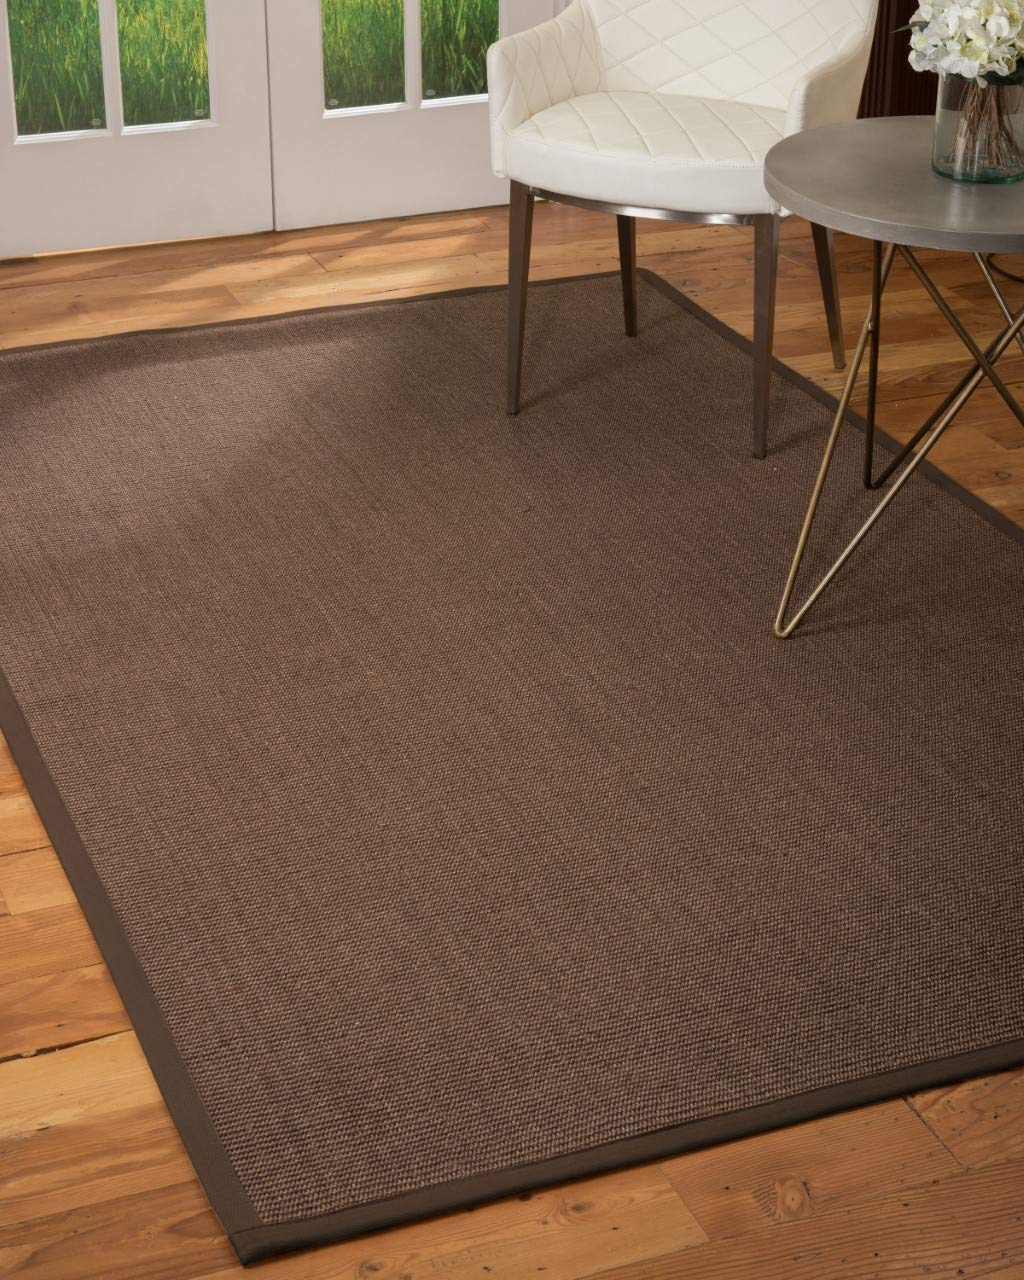 Natural Area Rugs Normandie, Dark Brown Sisal Rug, 3 x 5